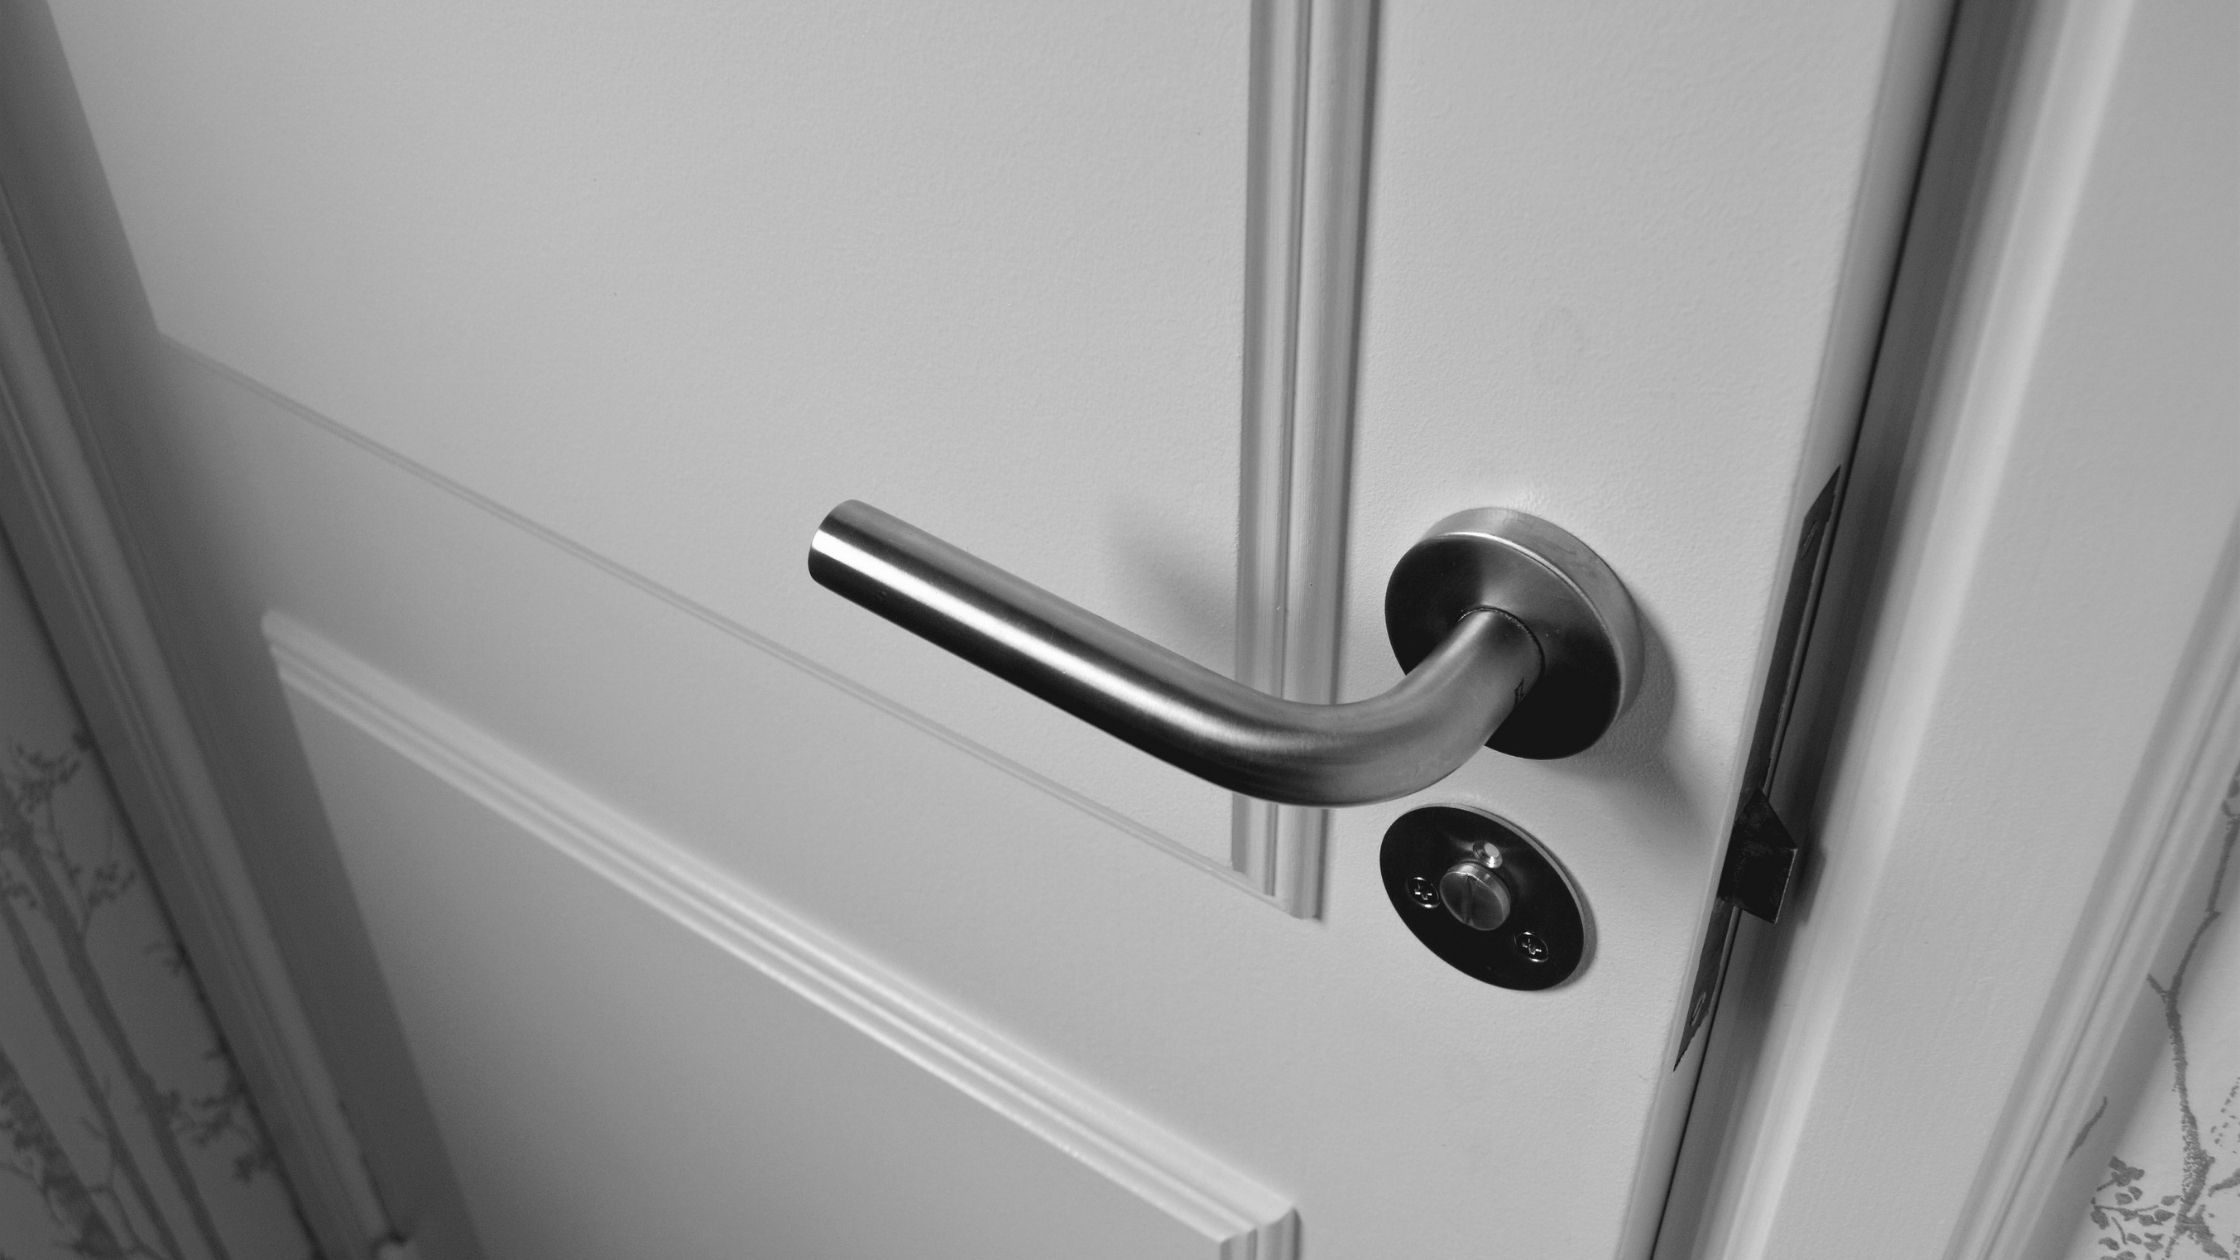 The door handle on a white door can be seen.